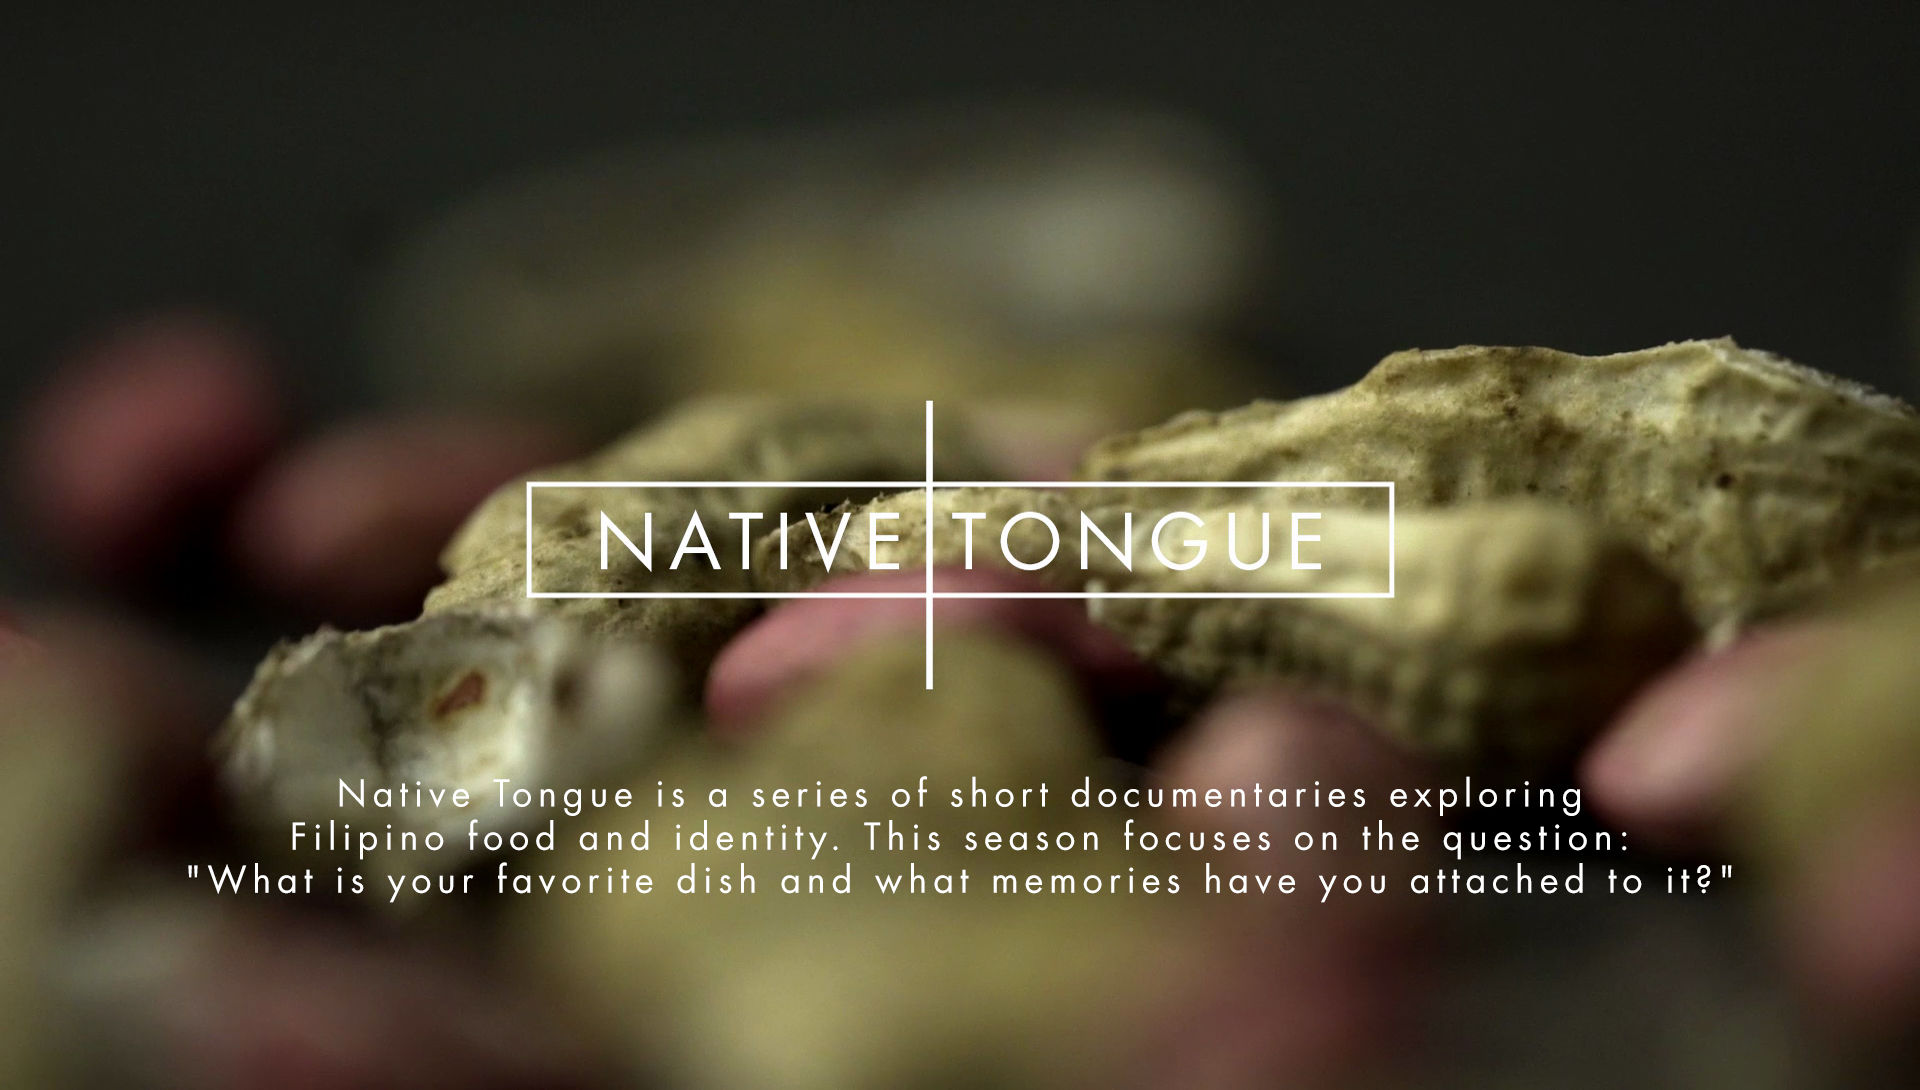 nativetongue-header.jpg